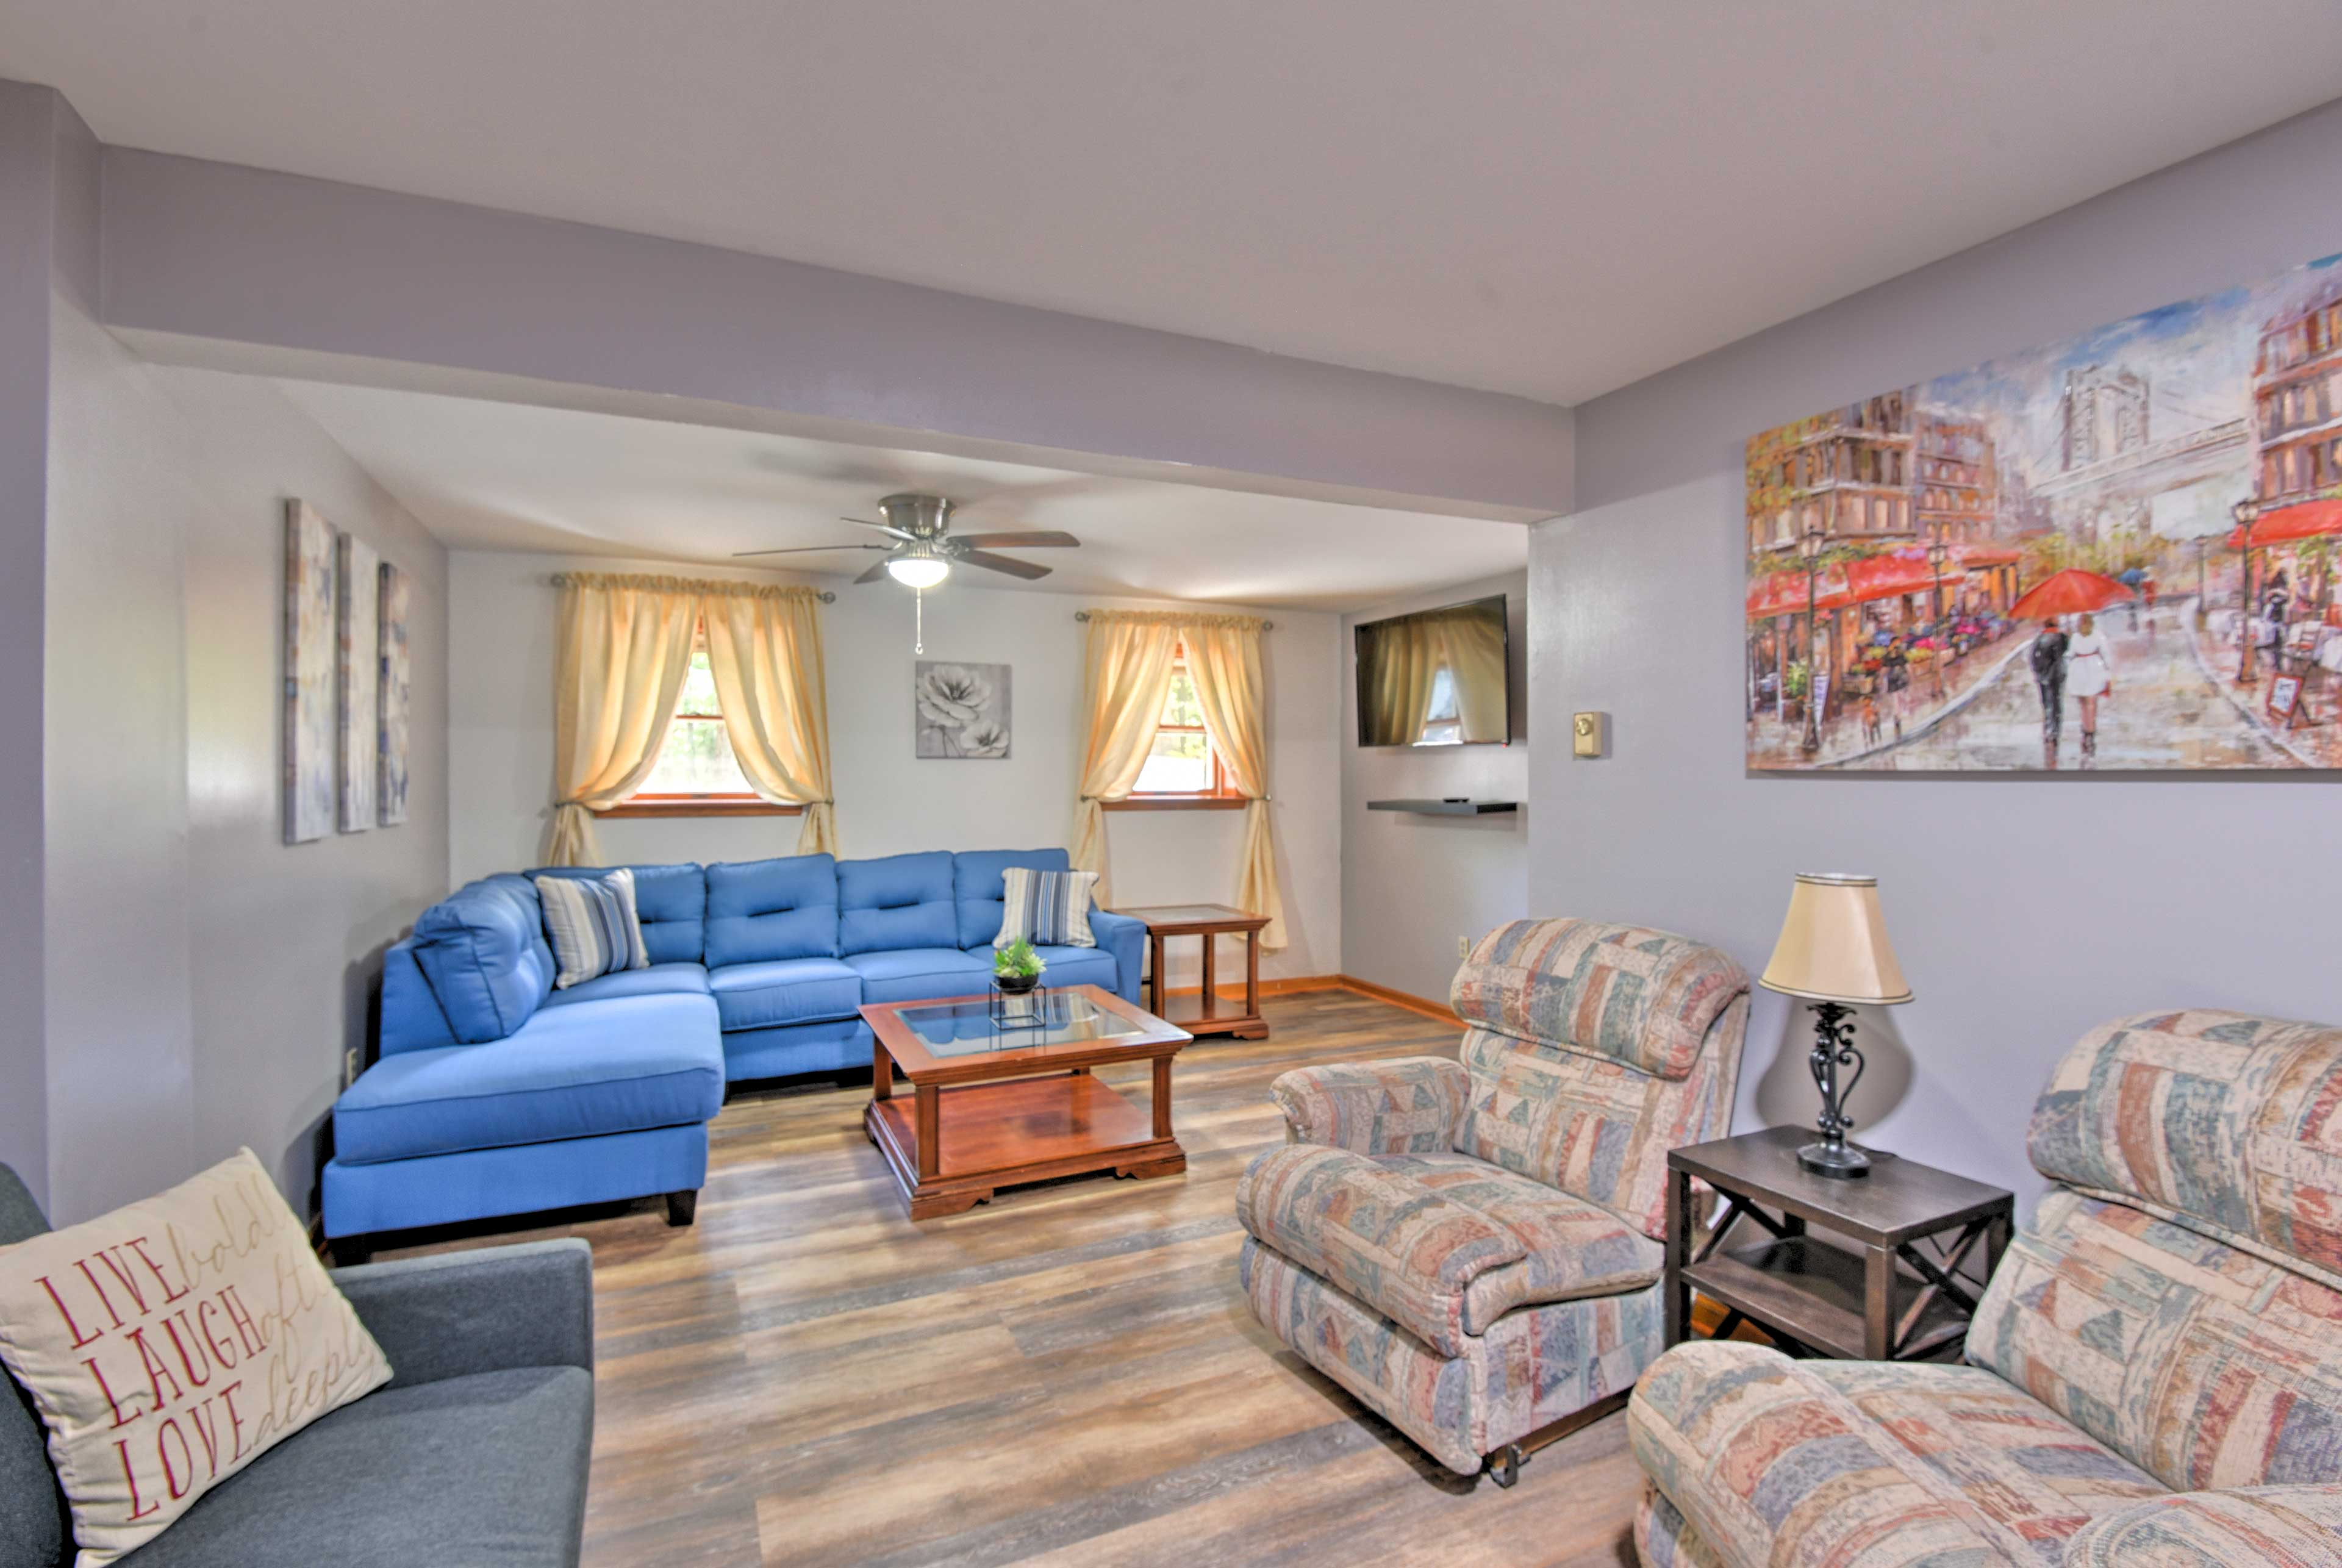 Take a load off in the downstairs living room with plenty of seats for everyone.